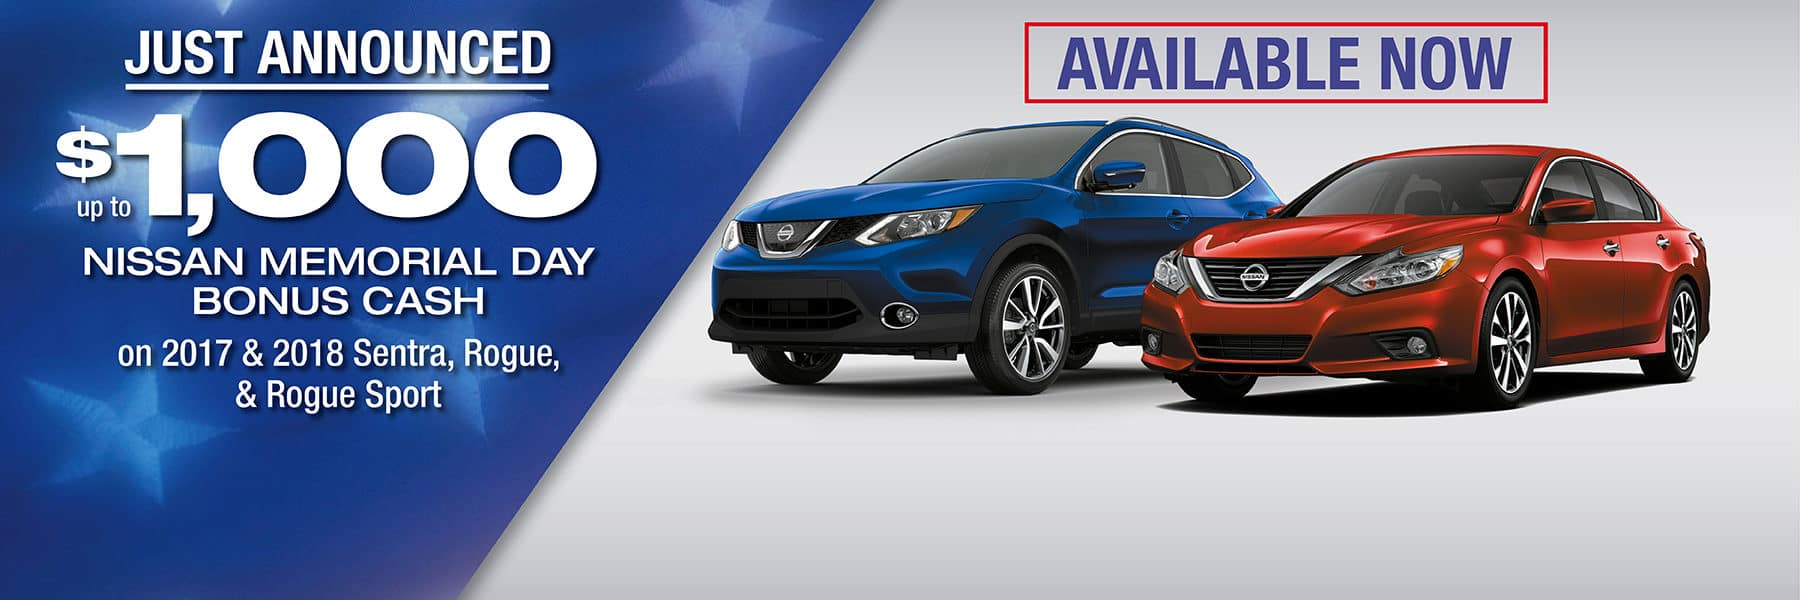 Up to $1,000 Nissan Memorial Day Bonus Cash on 2017 and 2018 Nissan Sentra, Nissan Rogue, and Nissan Rogue Sport at Berman Nissan of Chicago!